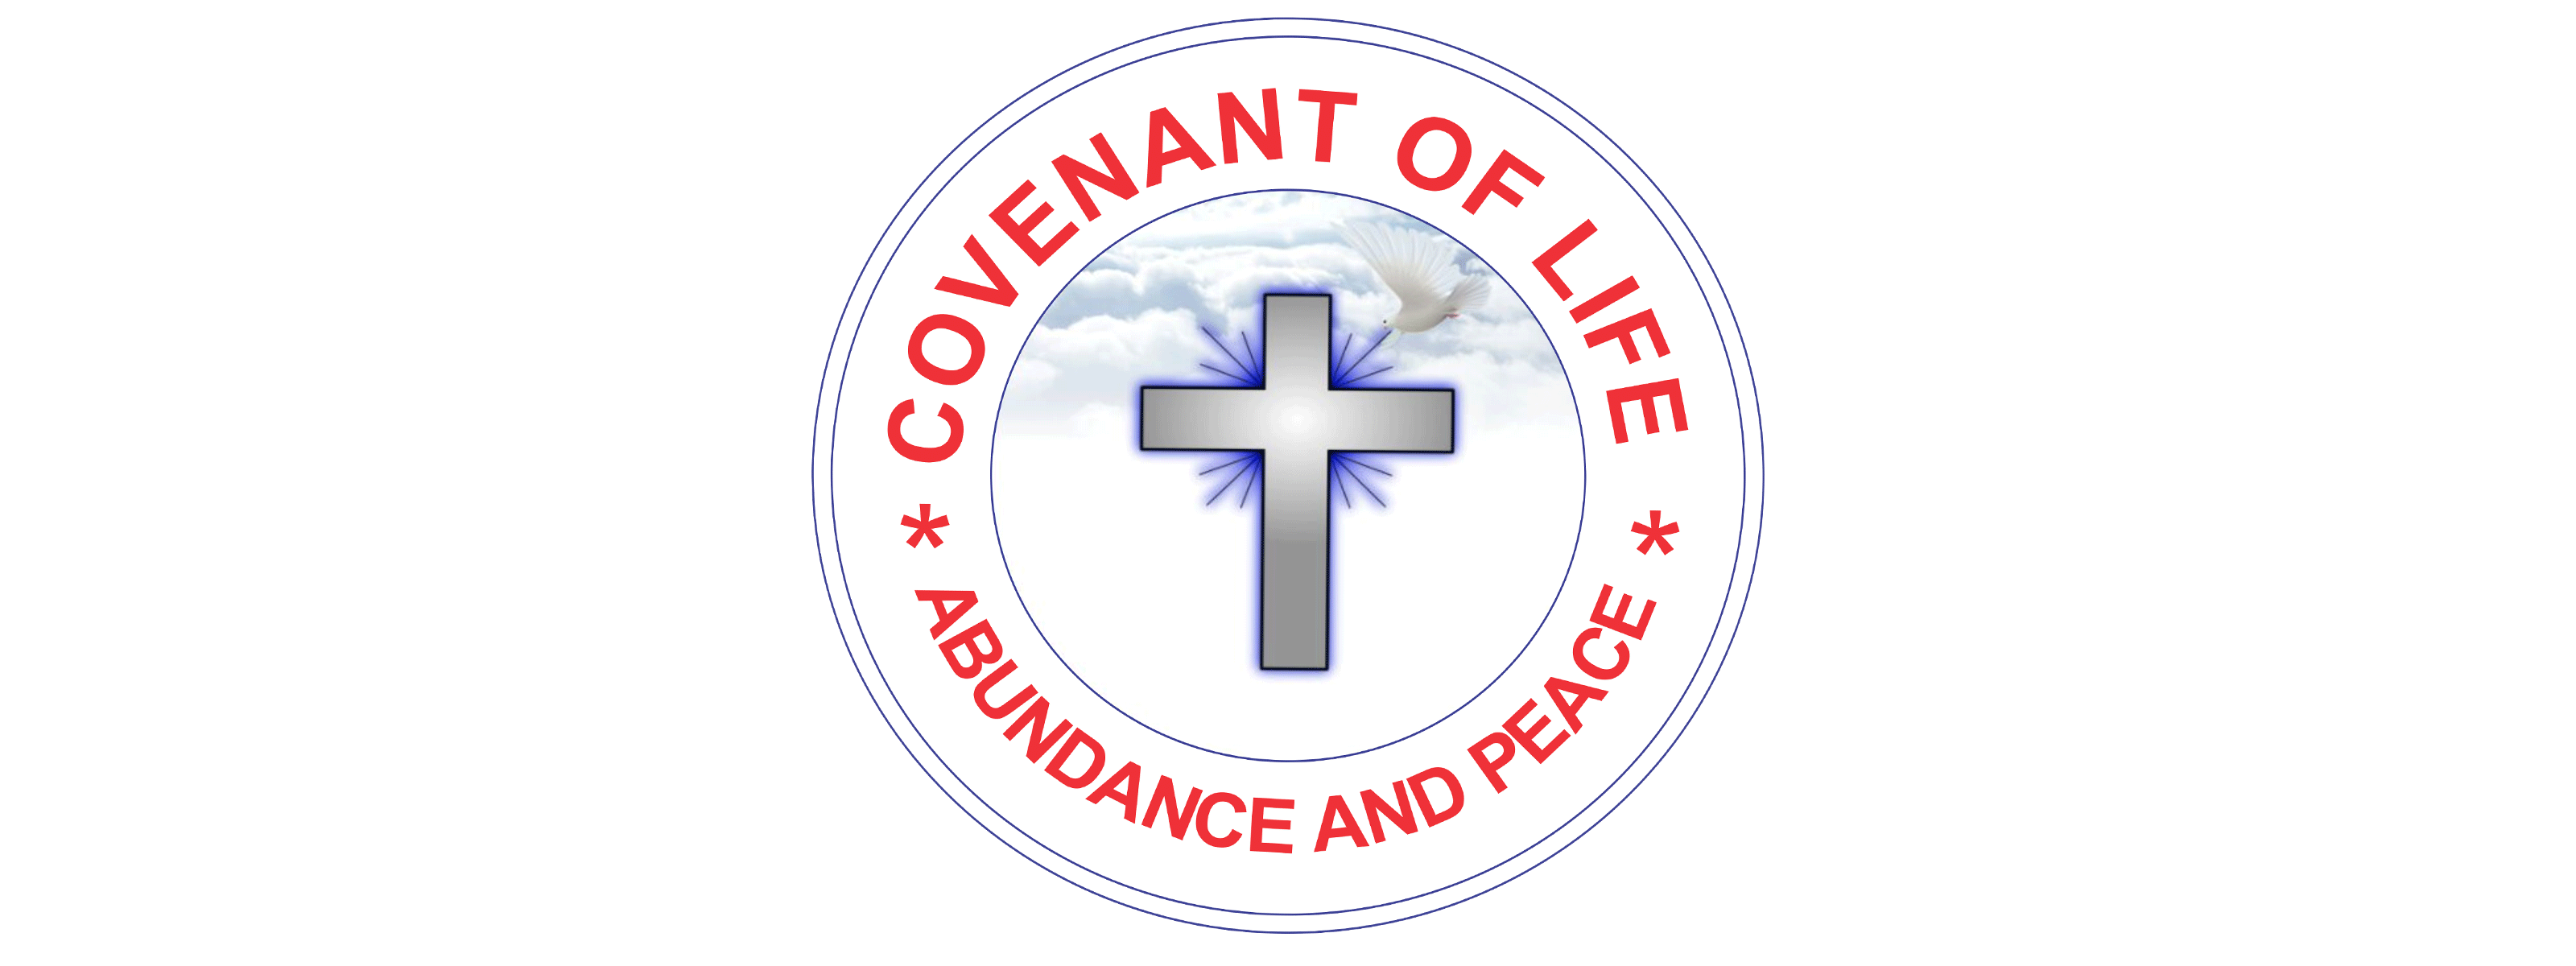 COVENANT OF LIFE RESOURCES